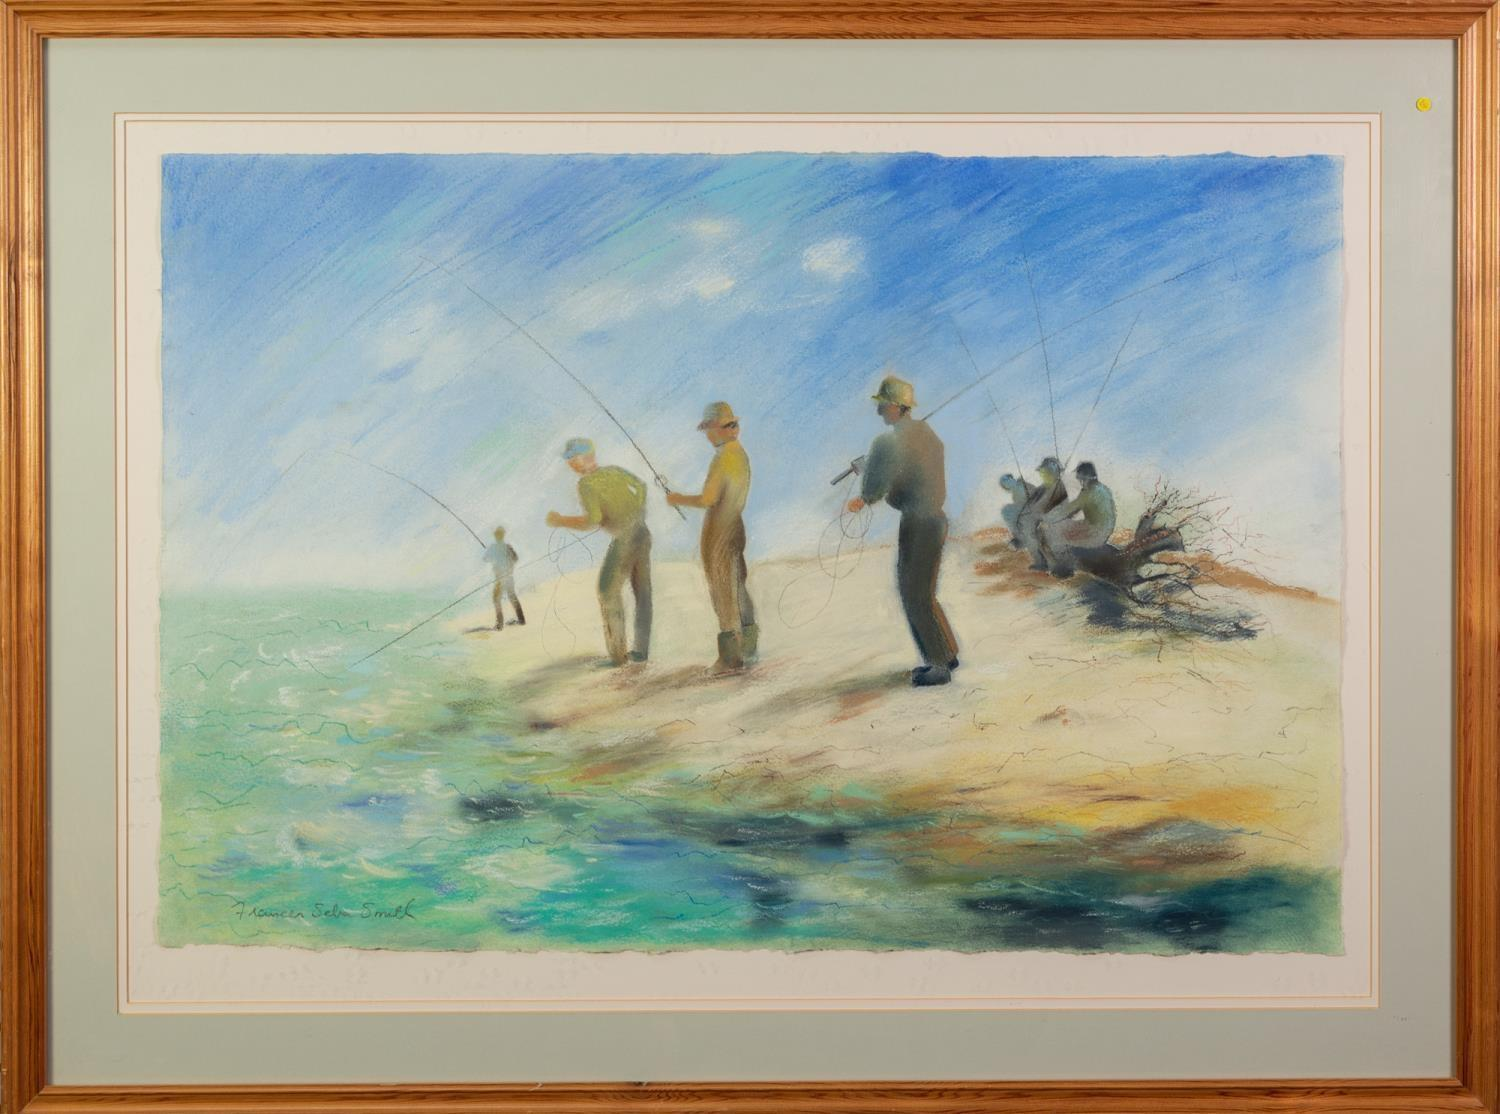 FRANCES SEBA SMITH (MODERN) PASTEL DRAWING Men fishing Signed 20? x 29? (50.8cm x 73.7cm) C/R-good - Image 2 of 2